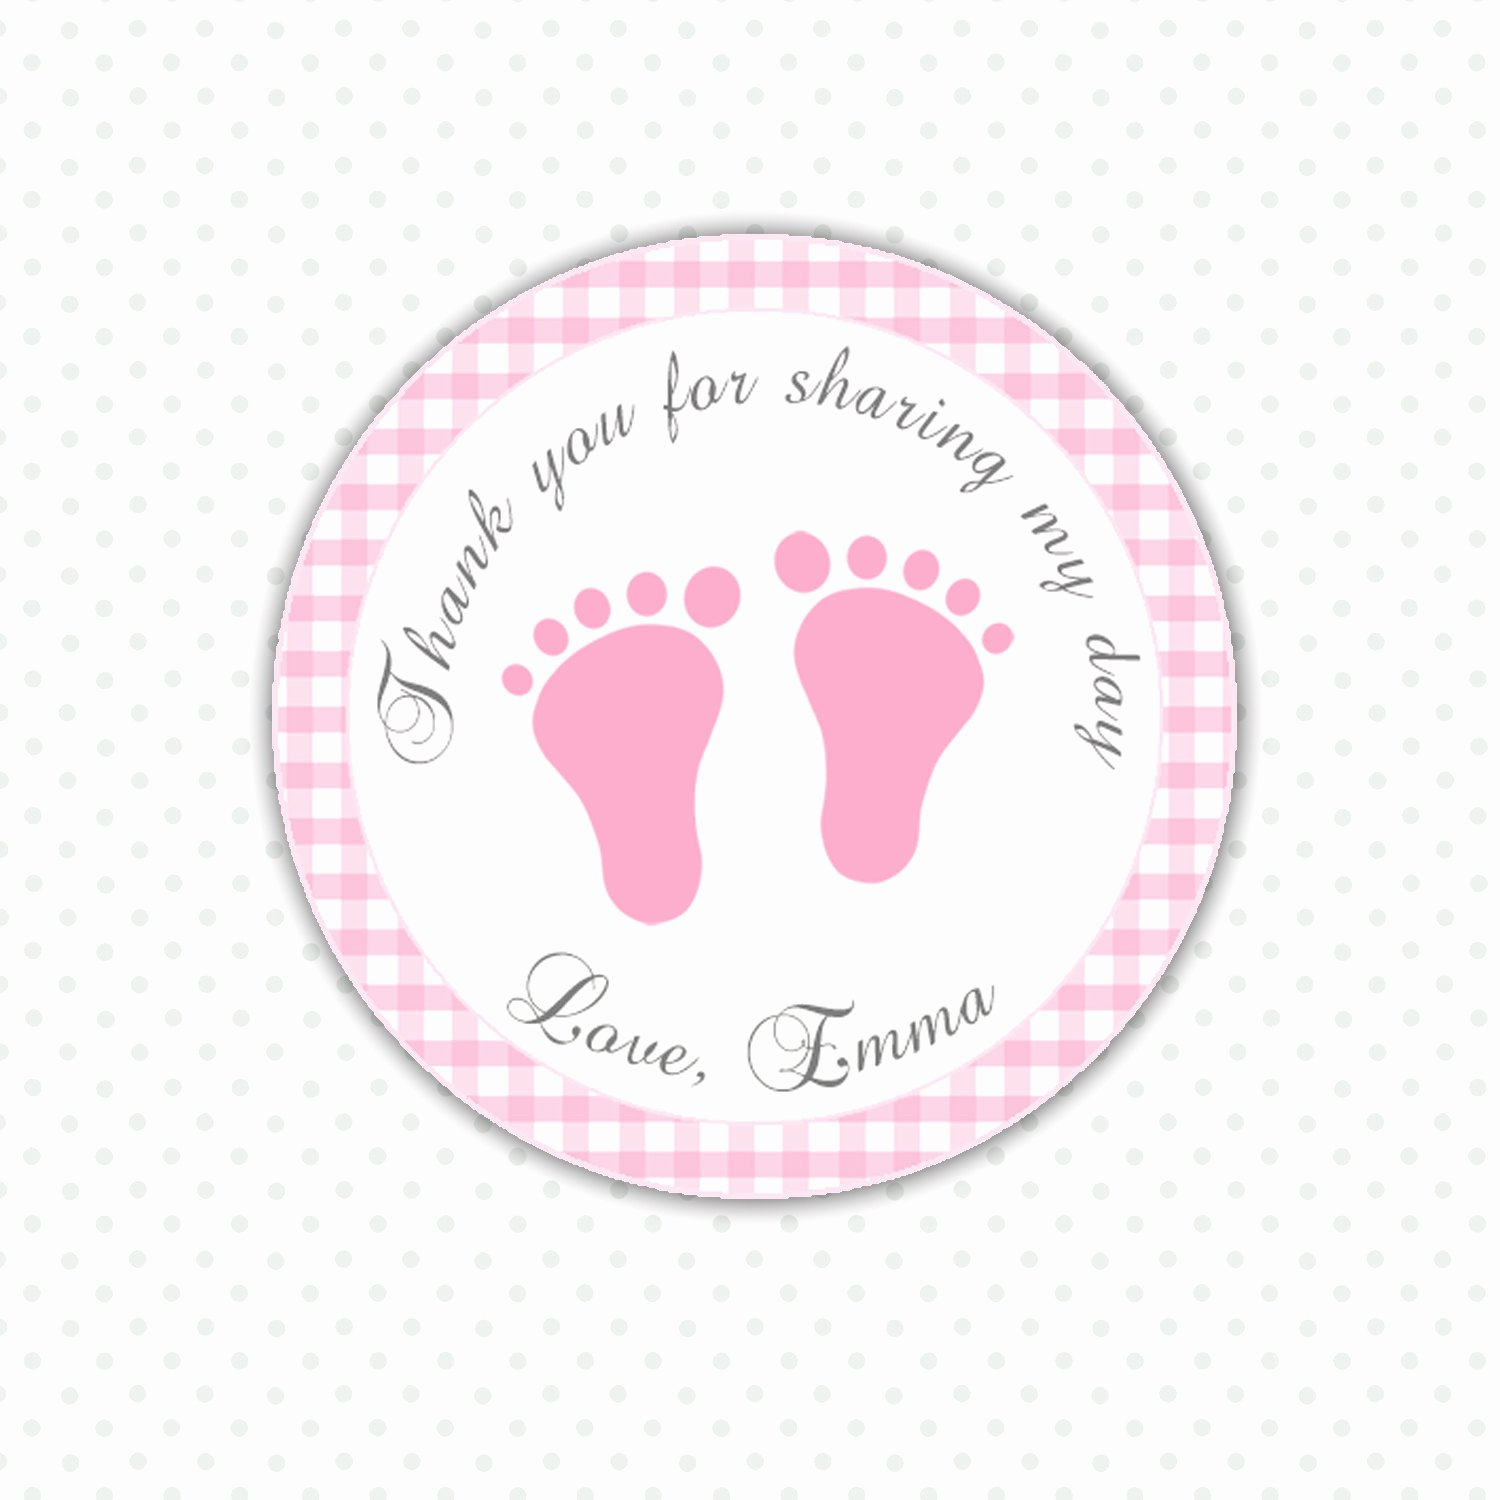 Printable Baby Shower Tags New Pink Gingham Thank You Tags Baby Feet Custom Baby Shower